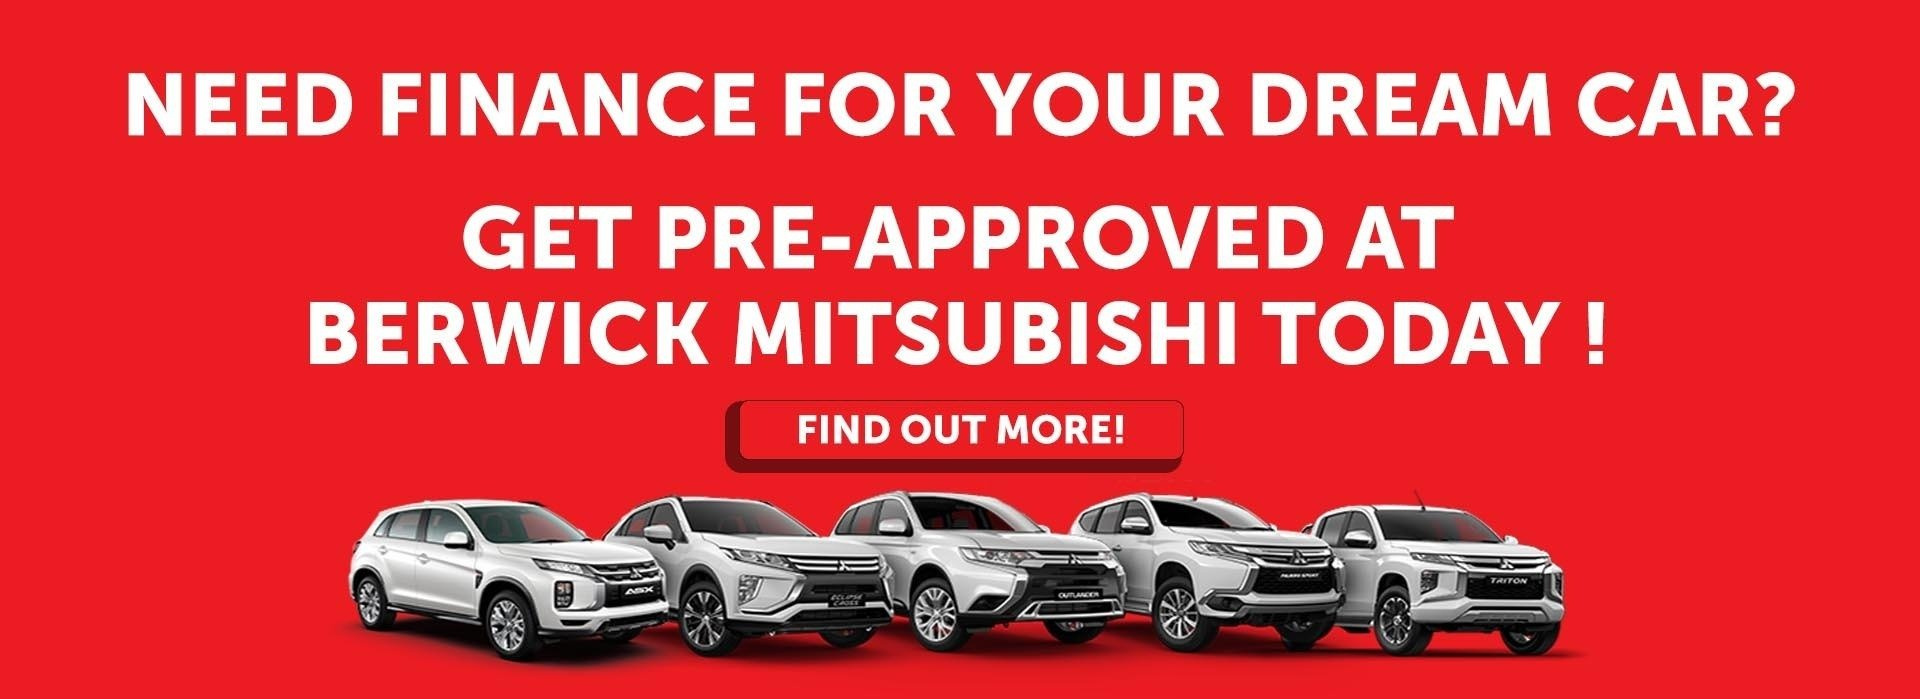 Berwick Mitsubishi Get Pre-approved Today!